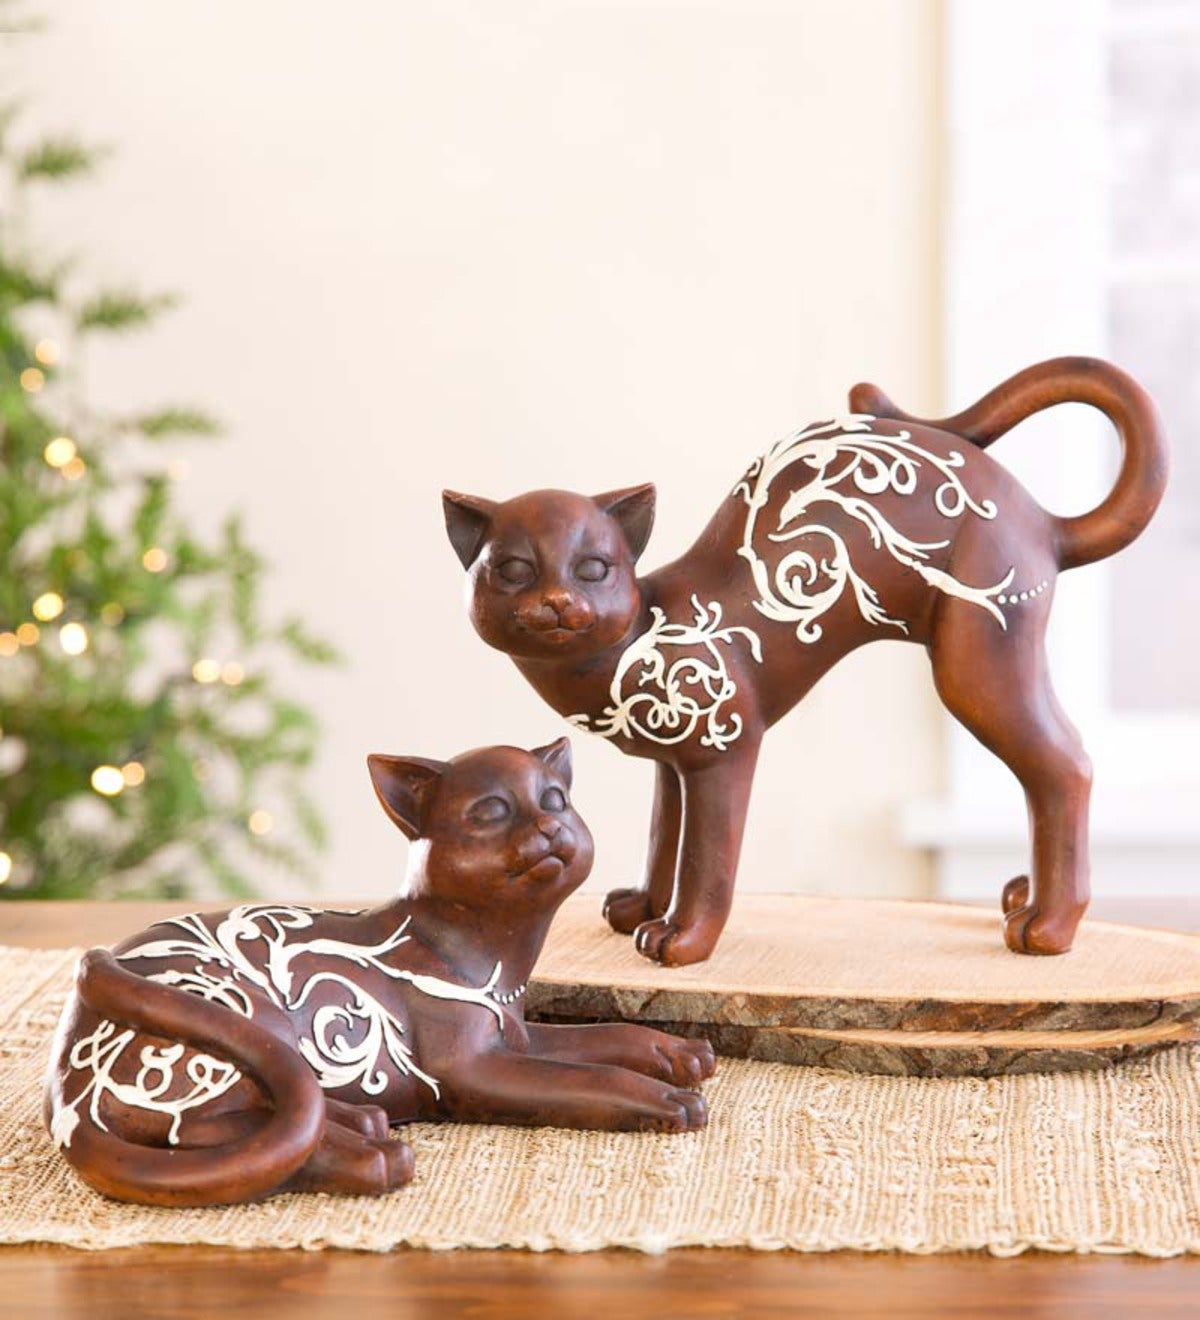 Artistic Cat Table Statues, Set of 2